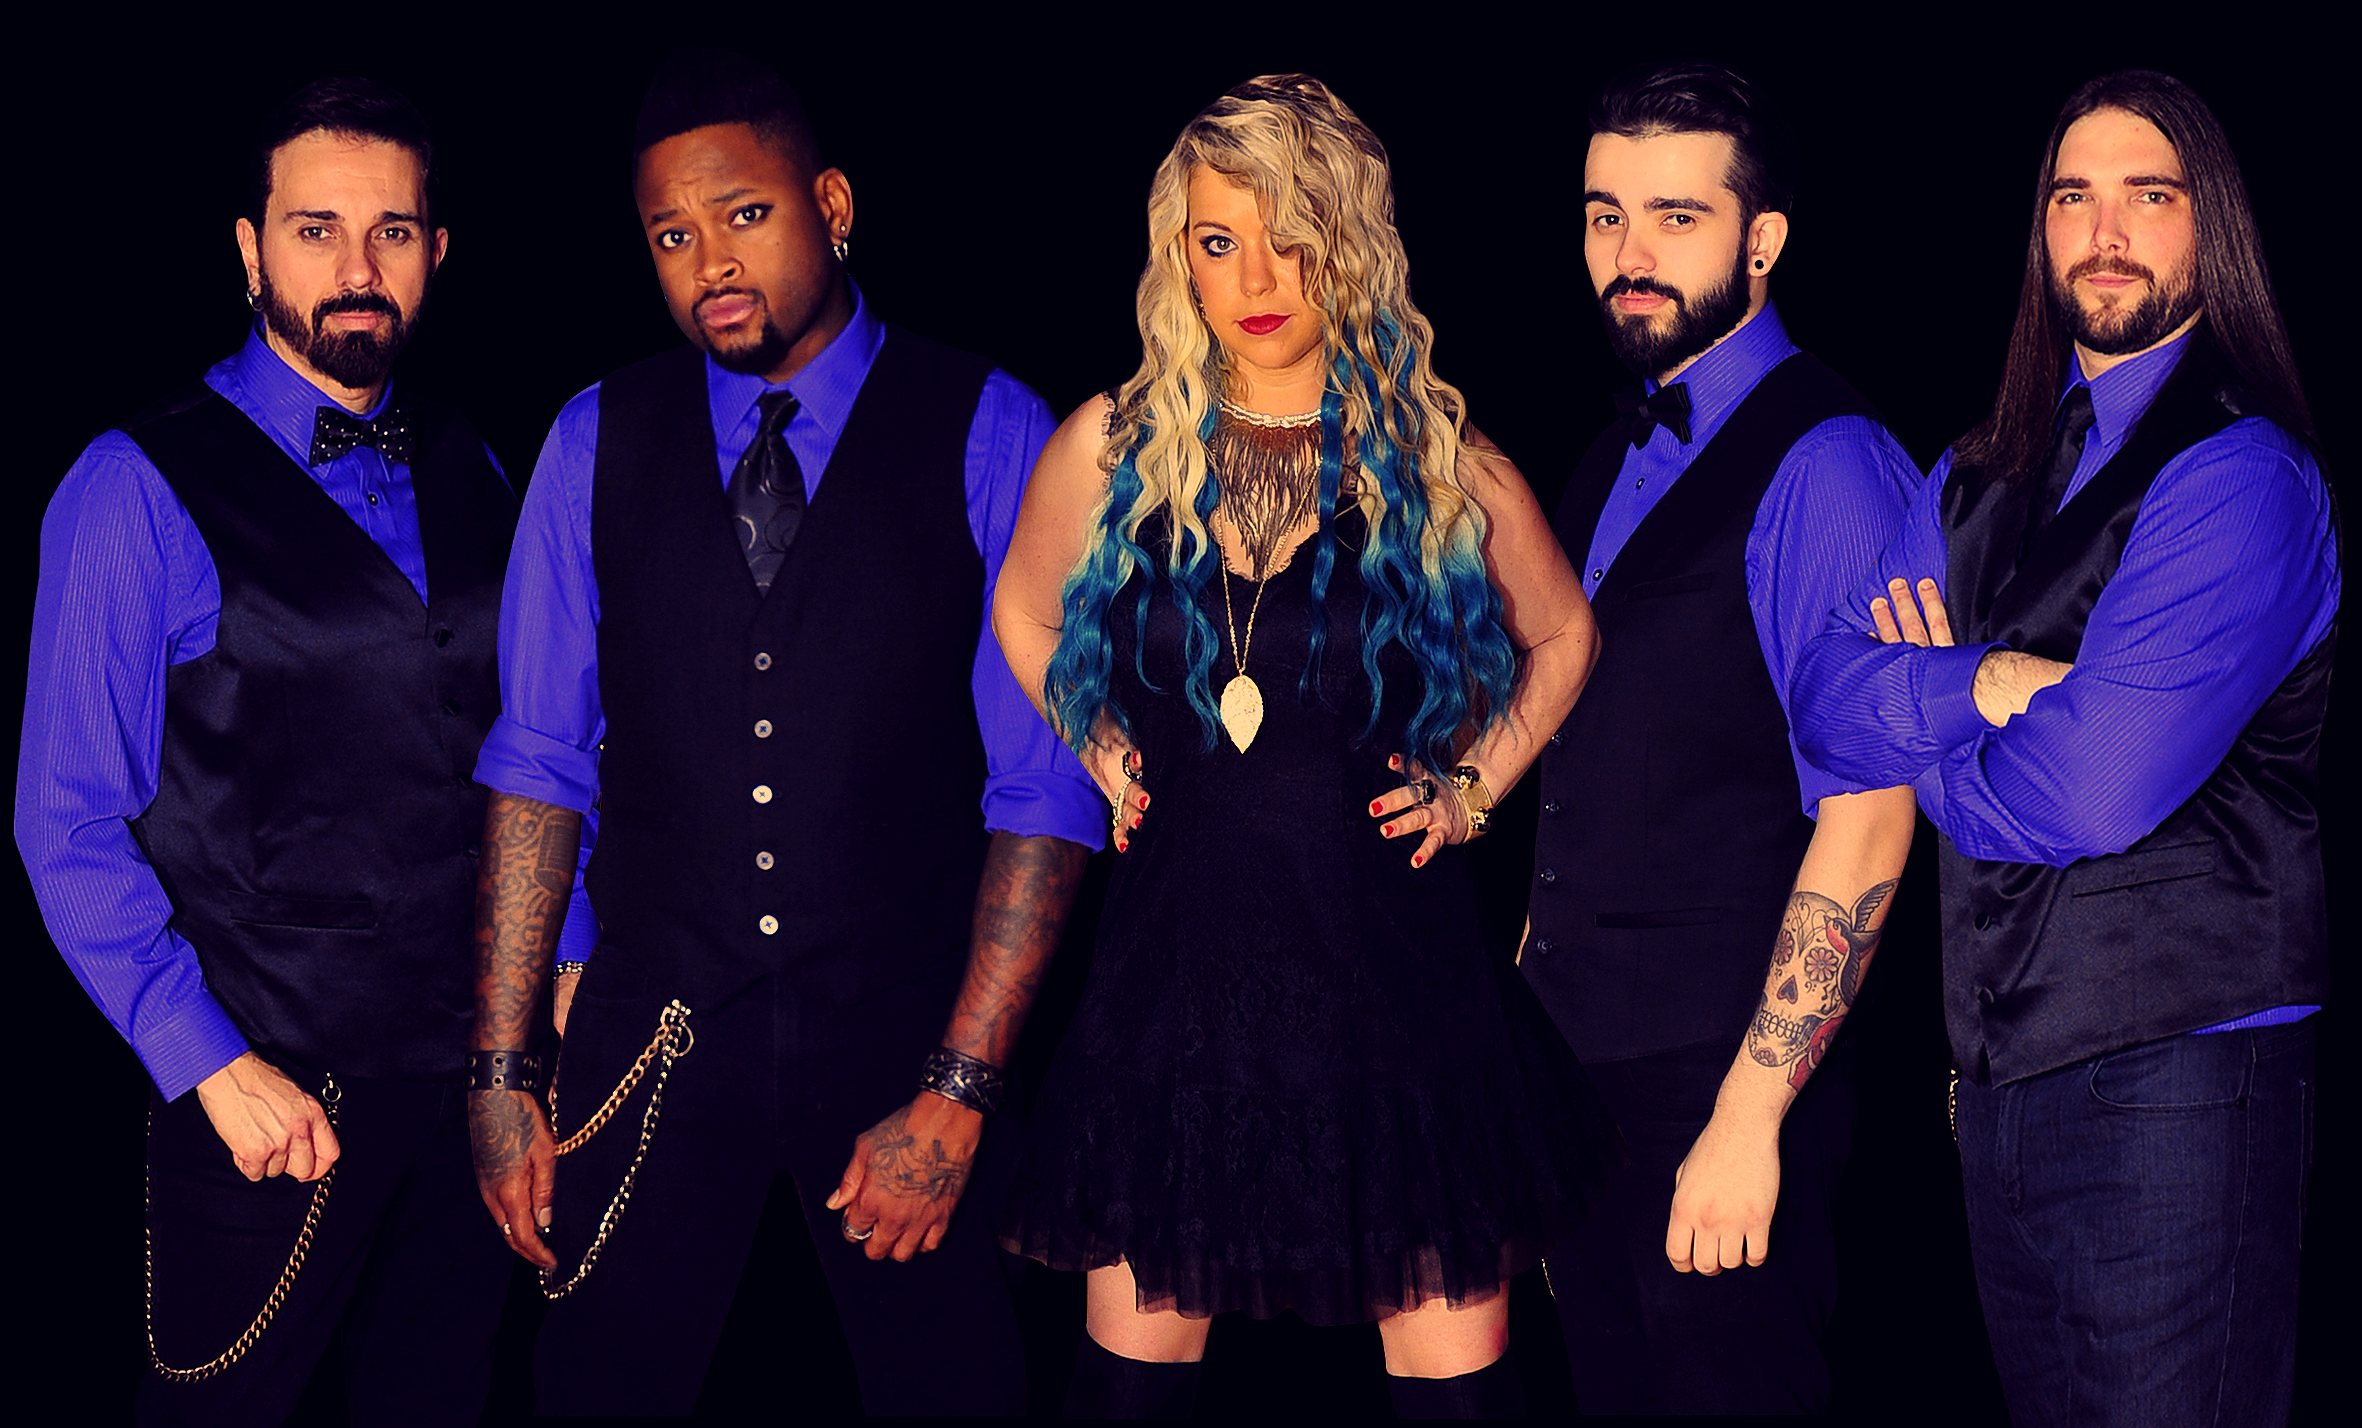 Fortag Band - Pensacola, FL - Pop, Rock, Dance, Modern Country ...